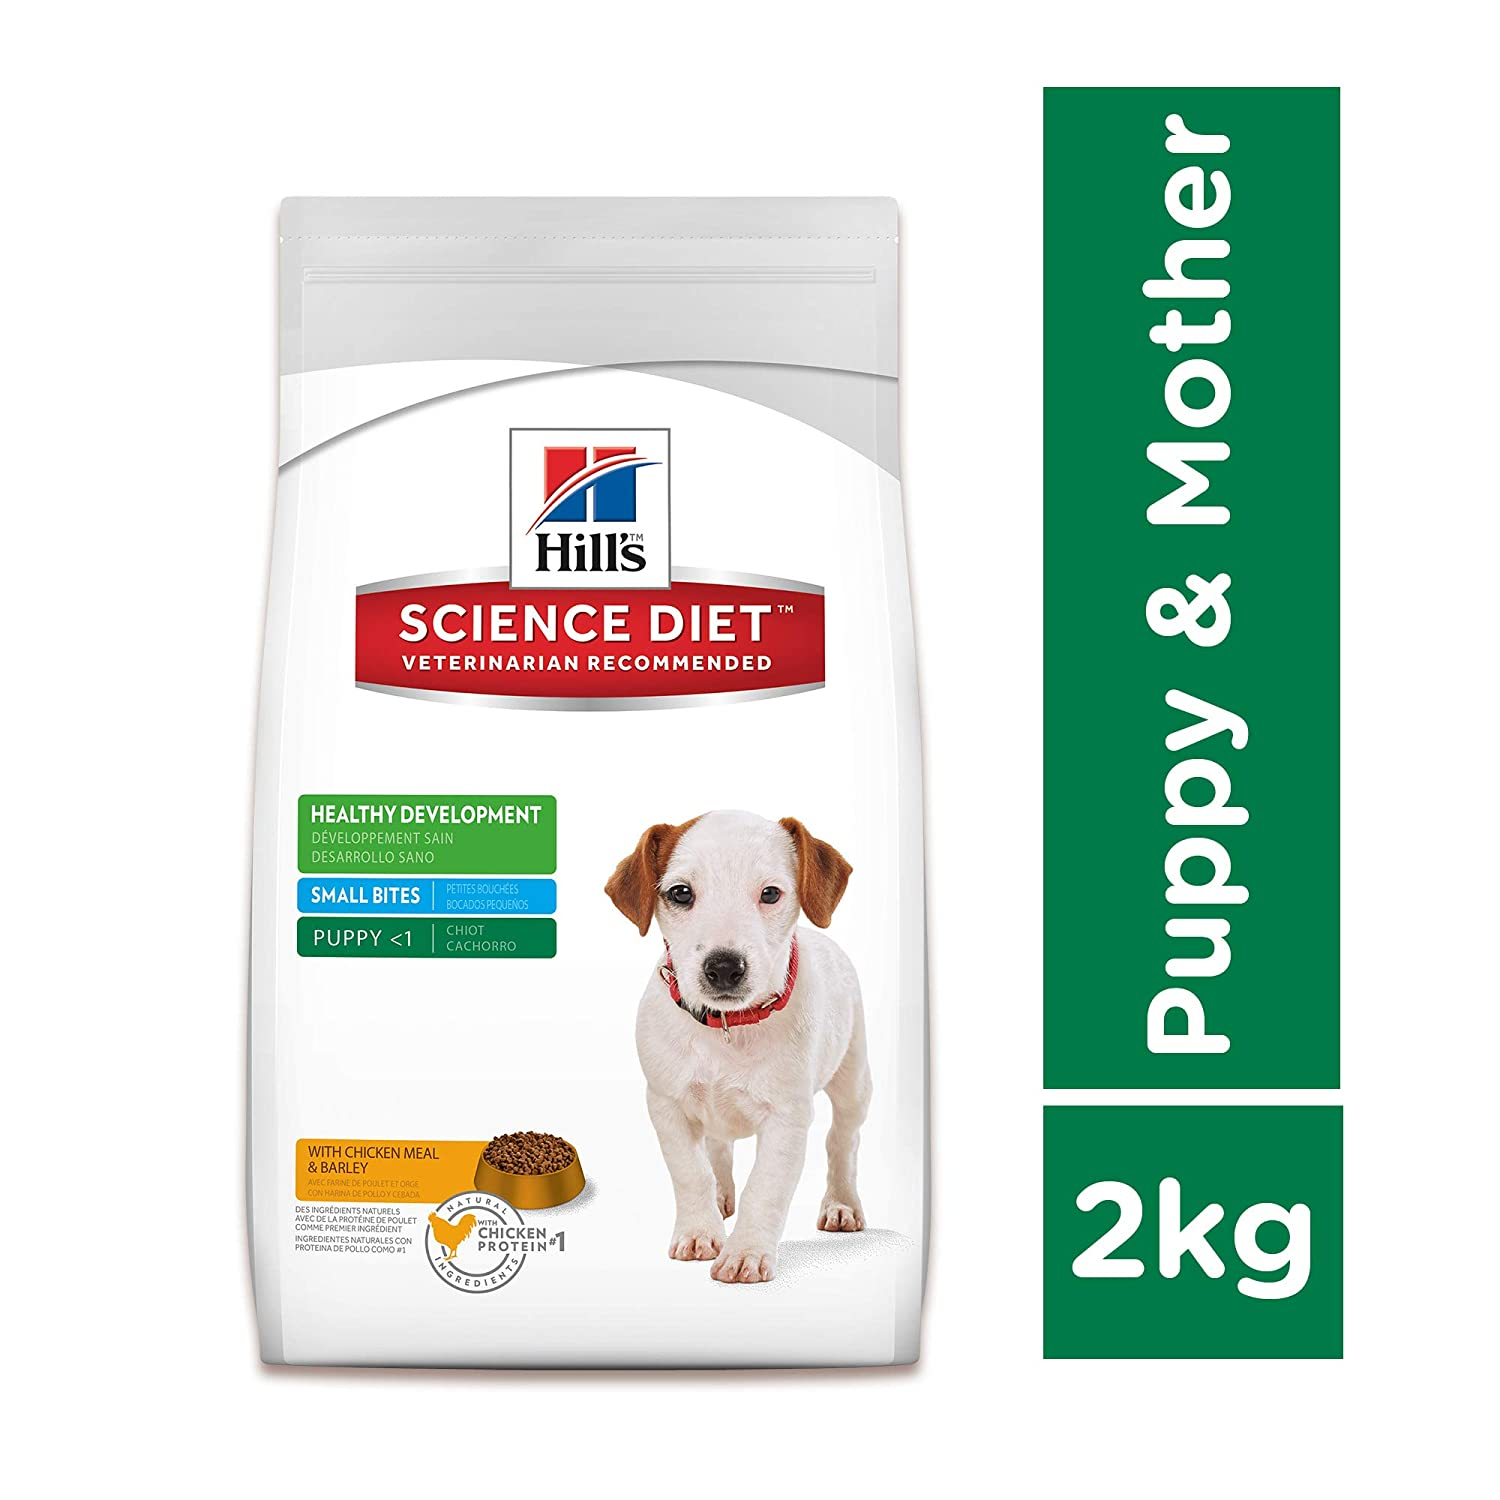 Hill's Science Diet Puppy Healthy Development, Small Bites Chicken Meal &  Barley Dry Dog Food, 2 kg